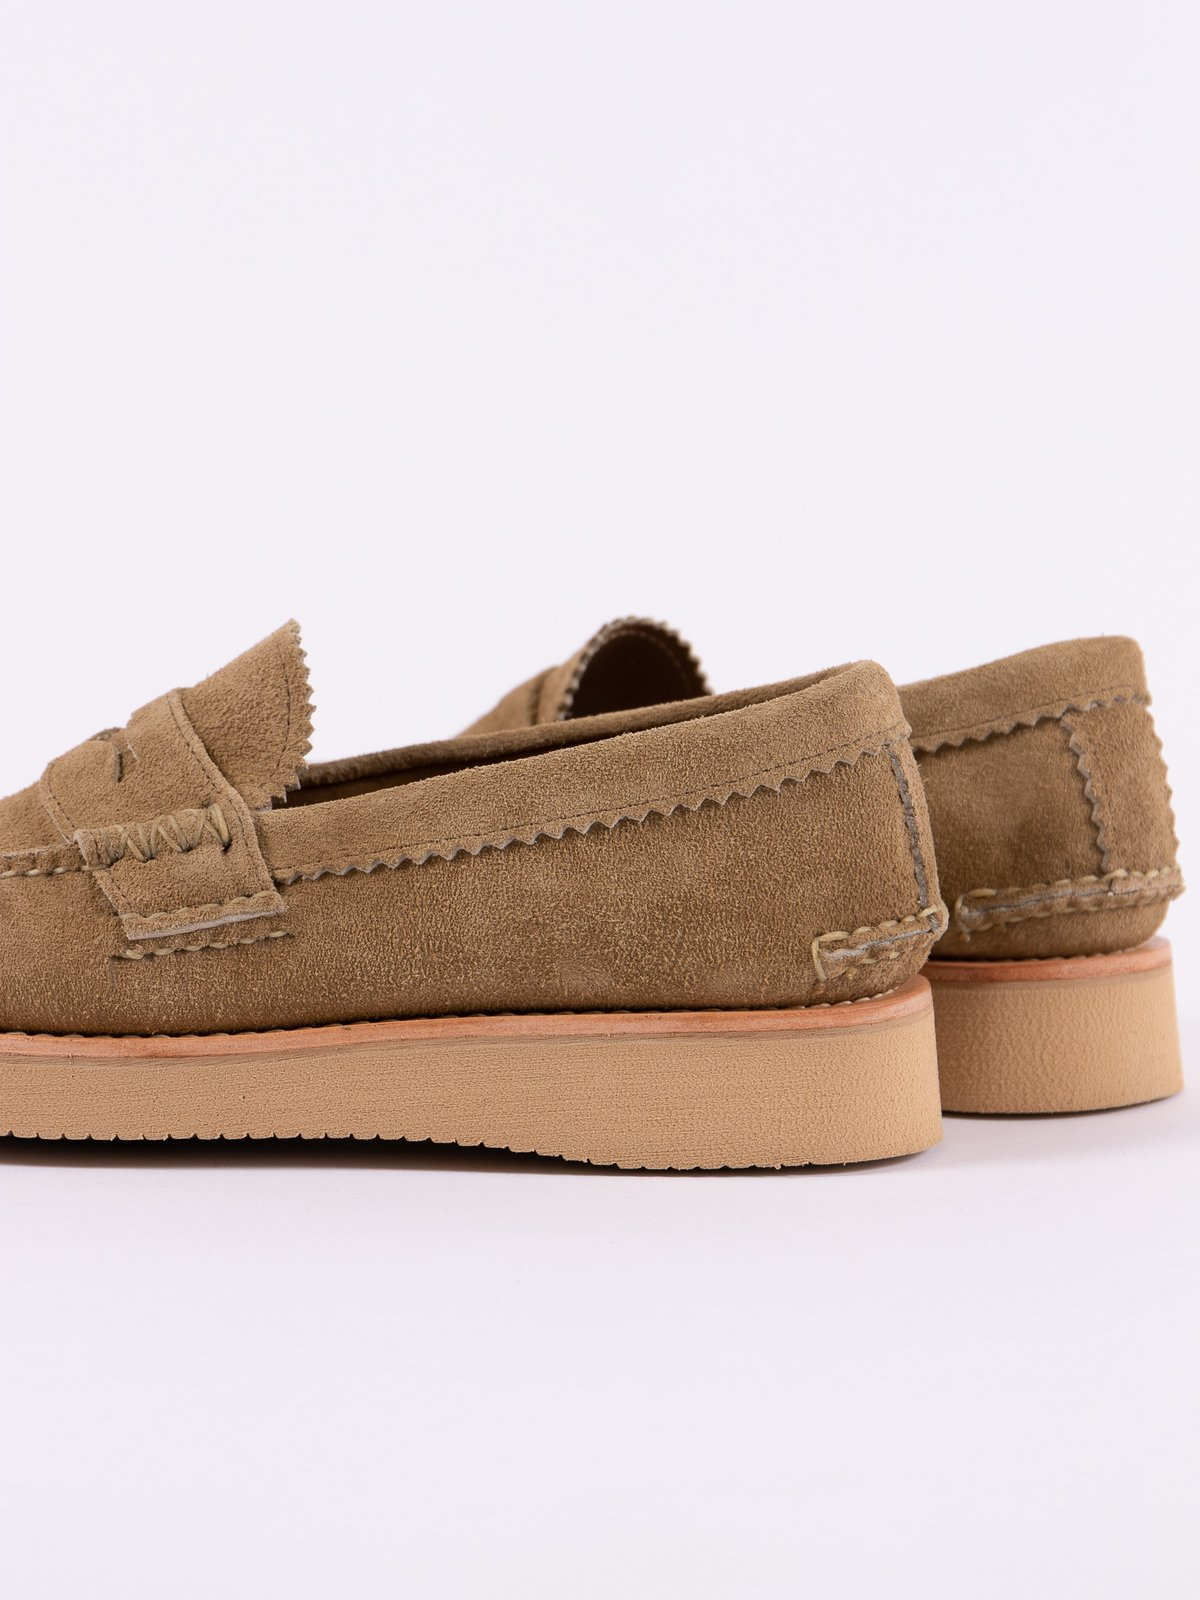 FO Khaki Loafer Shoe Exclusive - Image 4